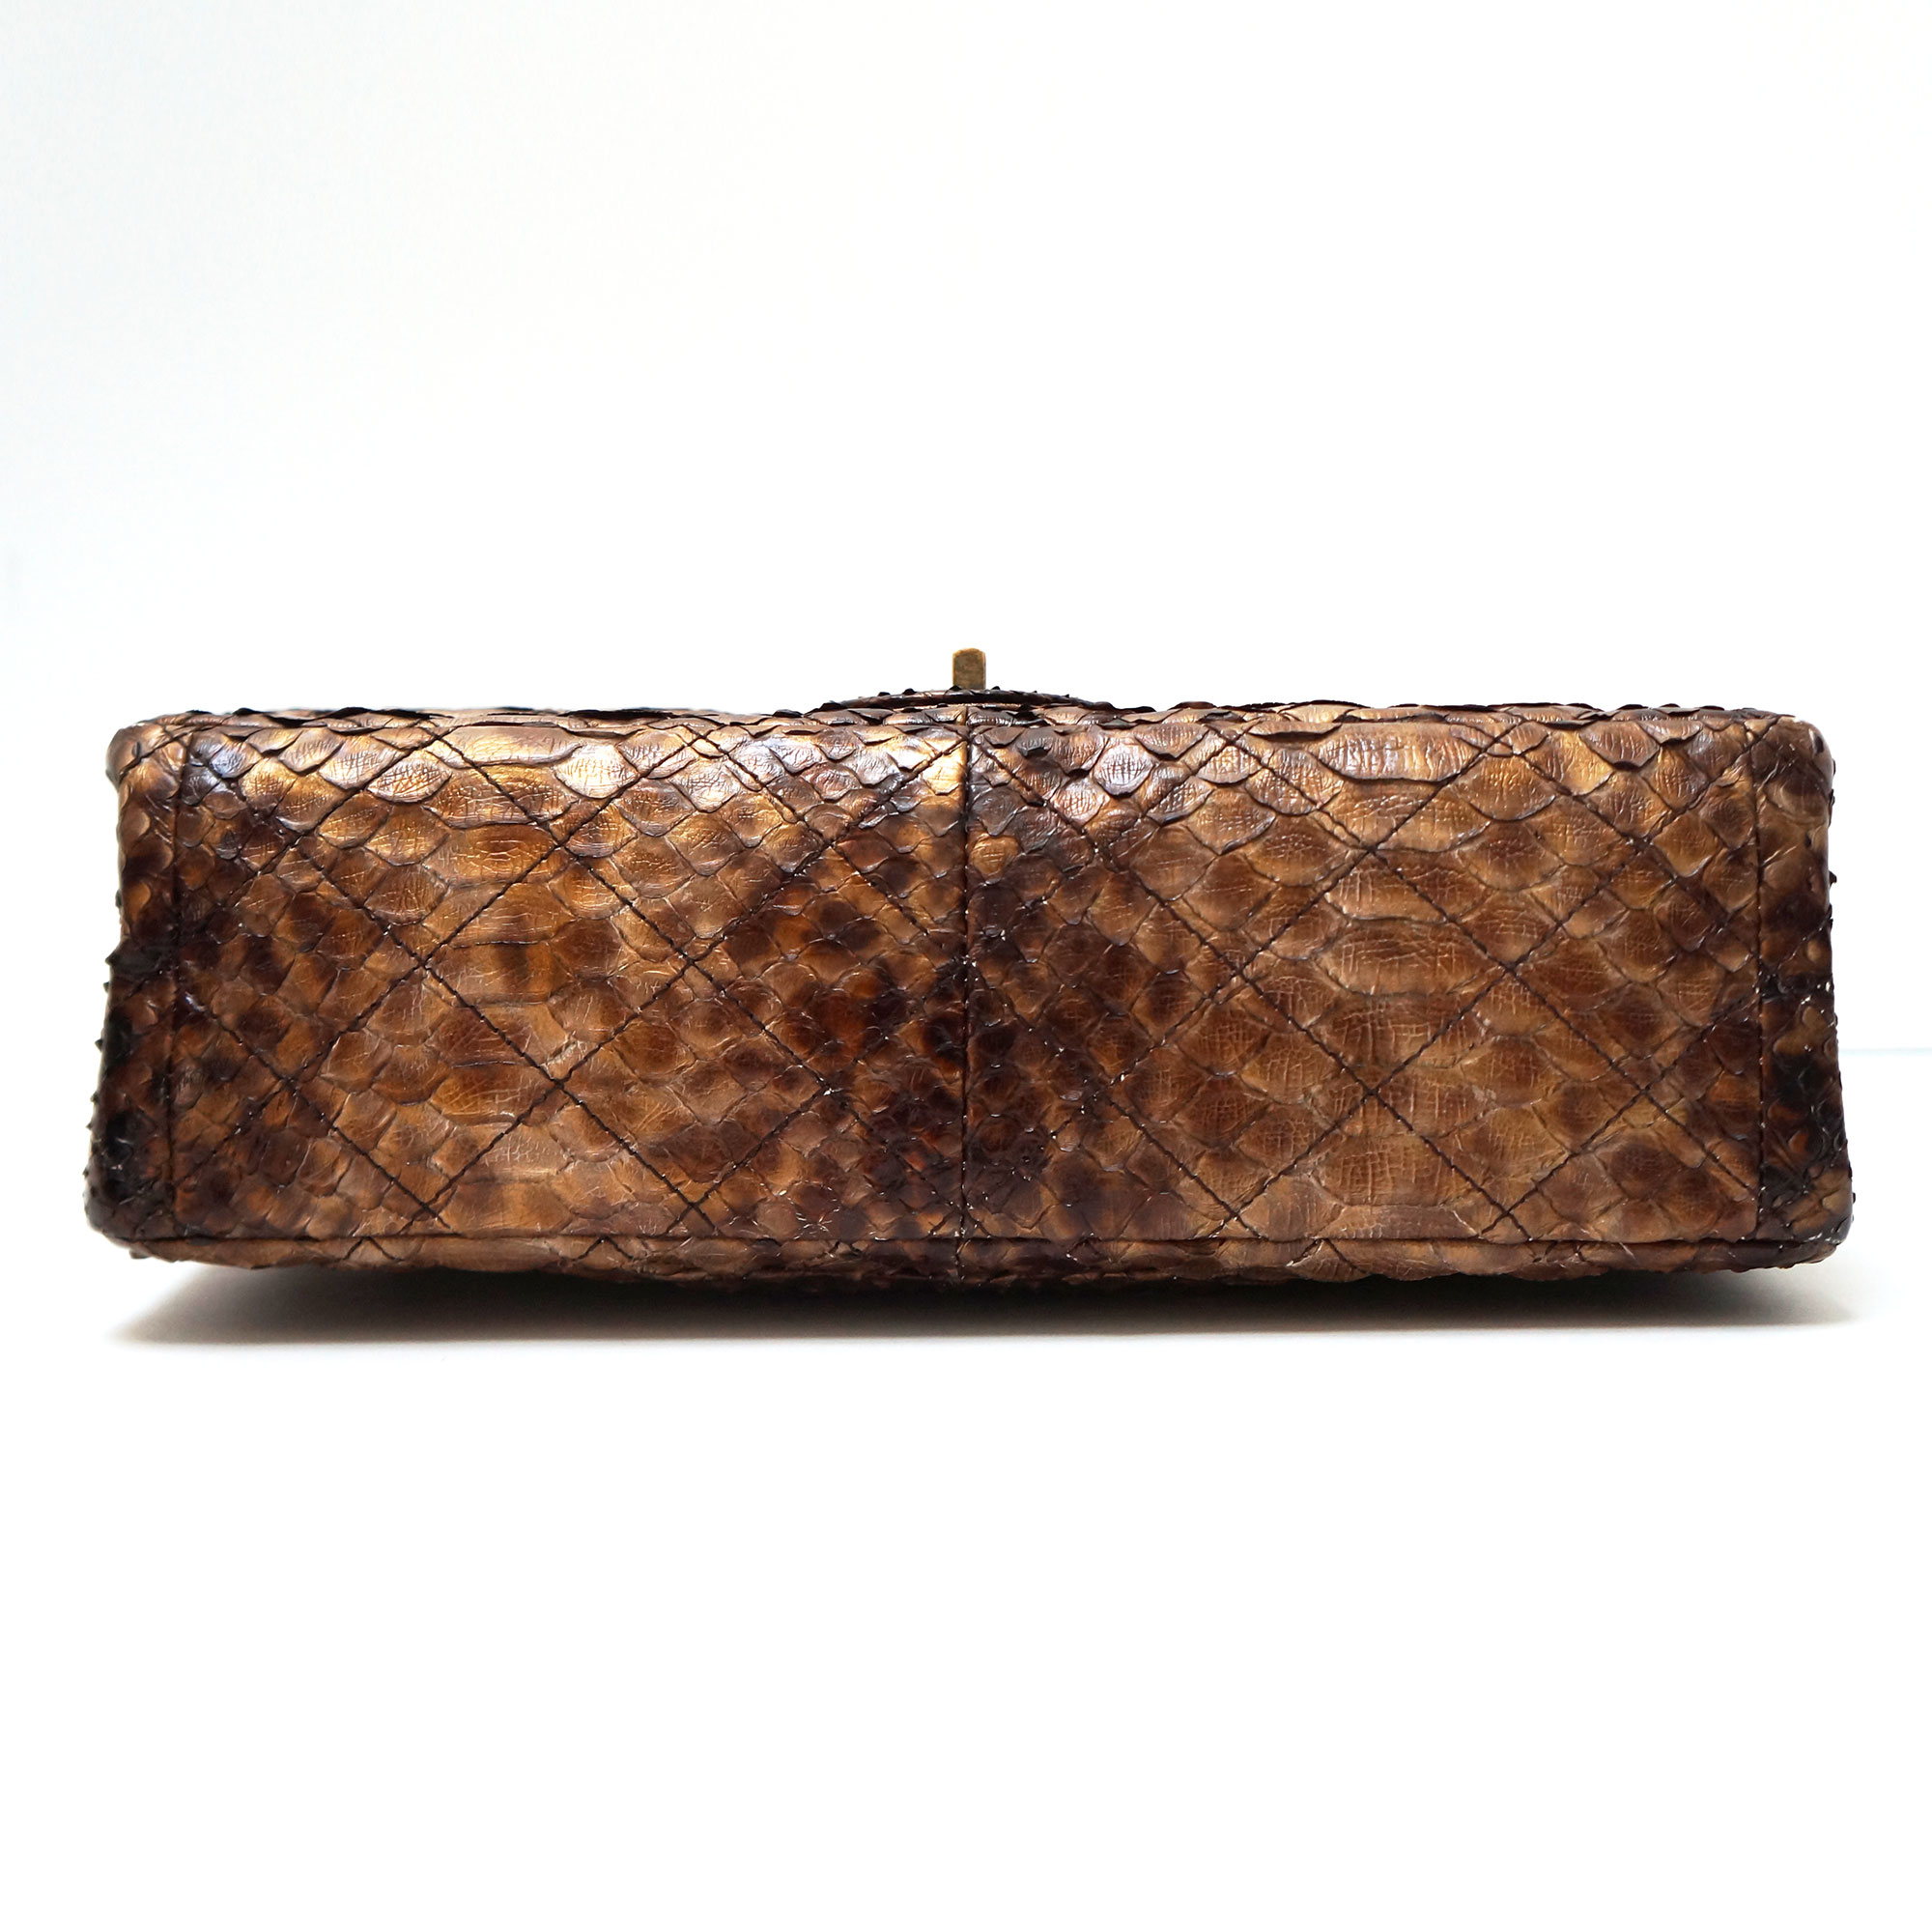 4229daa532b7 Chanel Limited Edition Shanghai Lucky Charms Brown Python Reissue 227 Flap  Bag